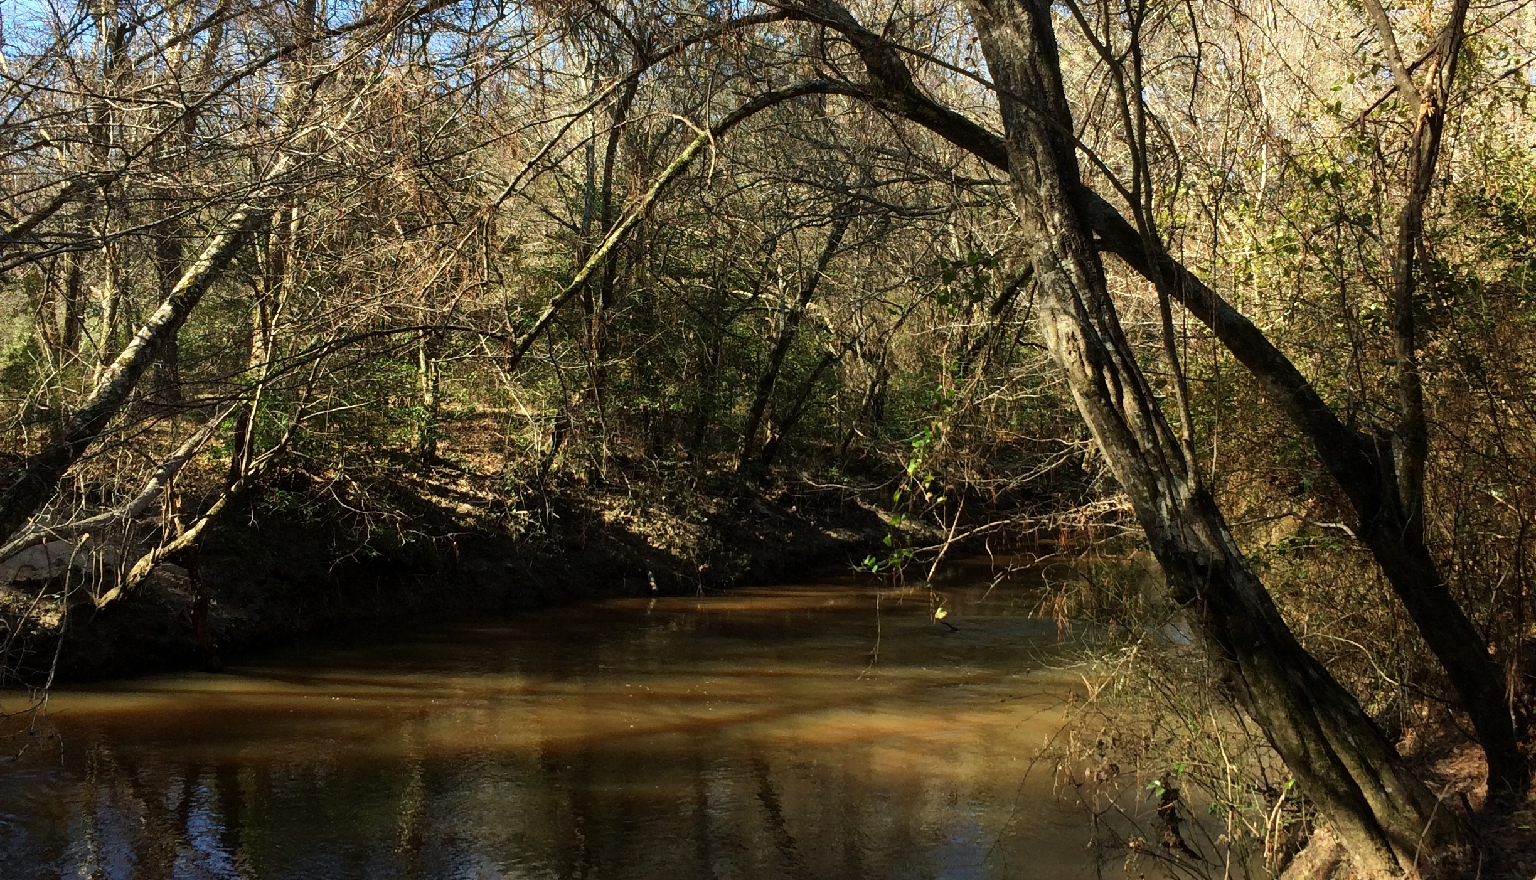 This 116-acre property protects granite outcrops, xeric pine woodlands, mesic hardwood forests, and bottomland hardwood forests with rivercane (Arundinaria gigantea) along Rocky Comfort Creek. William Bartram camped on the property's granite outcrops while trading with Cherokees and Creeks.